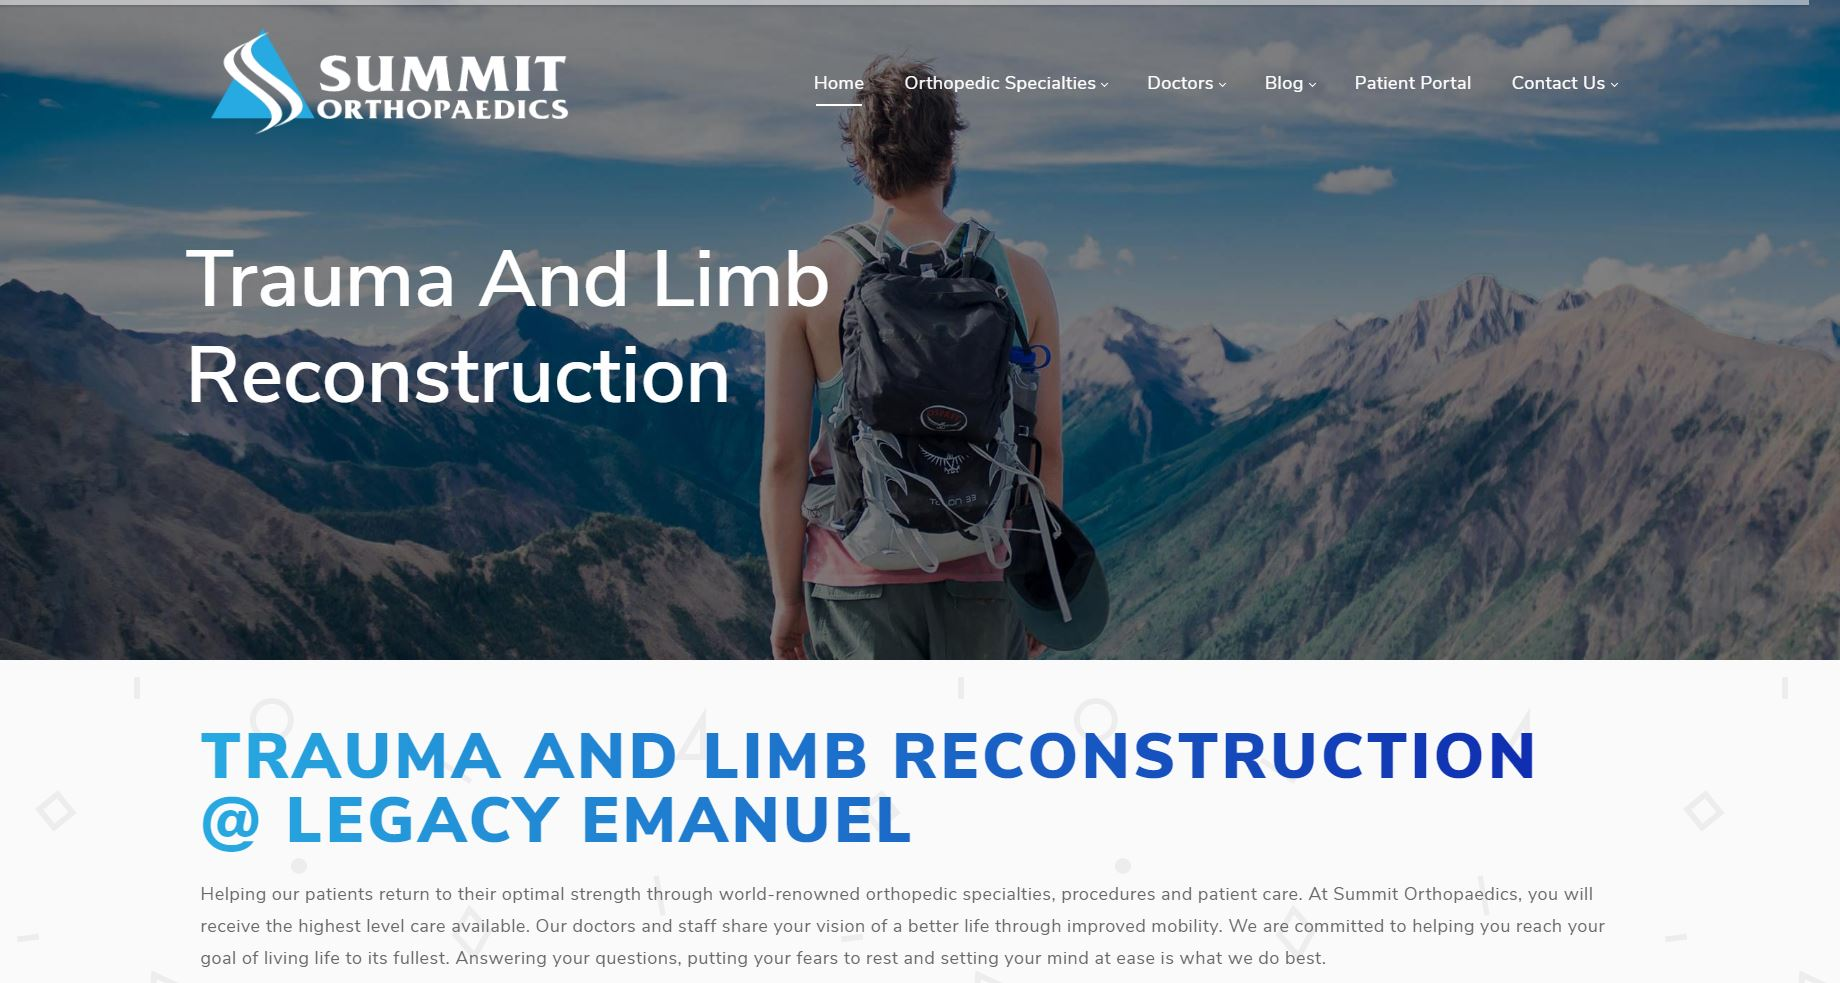 Summit Othopaedics